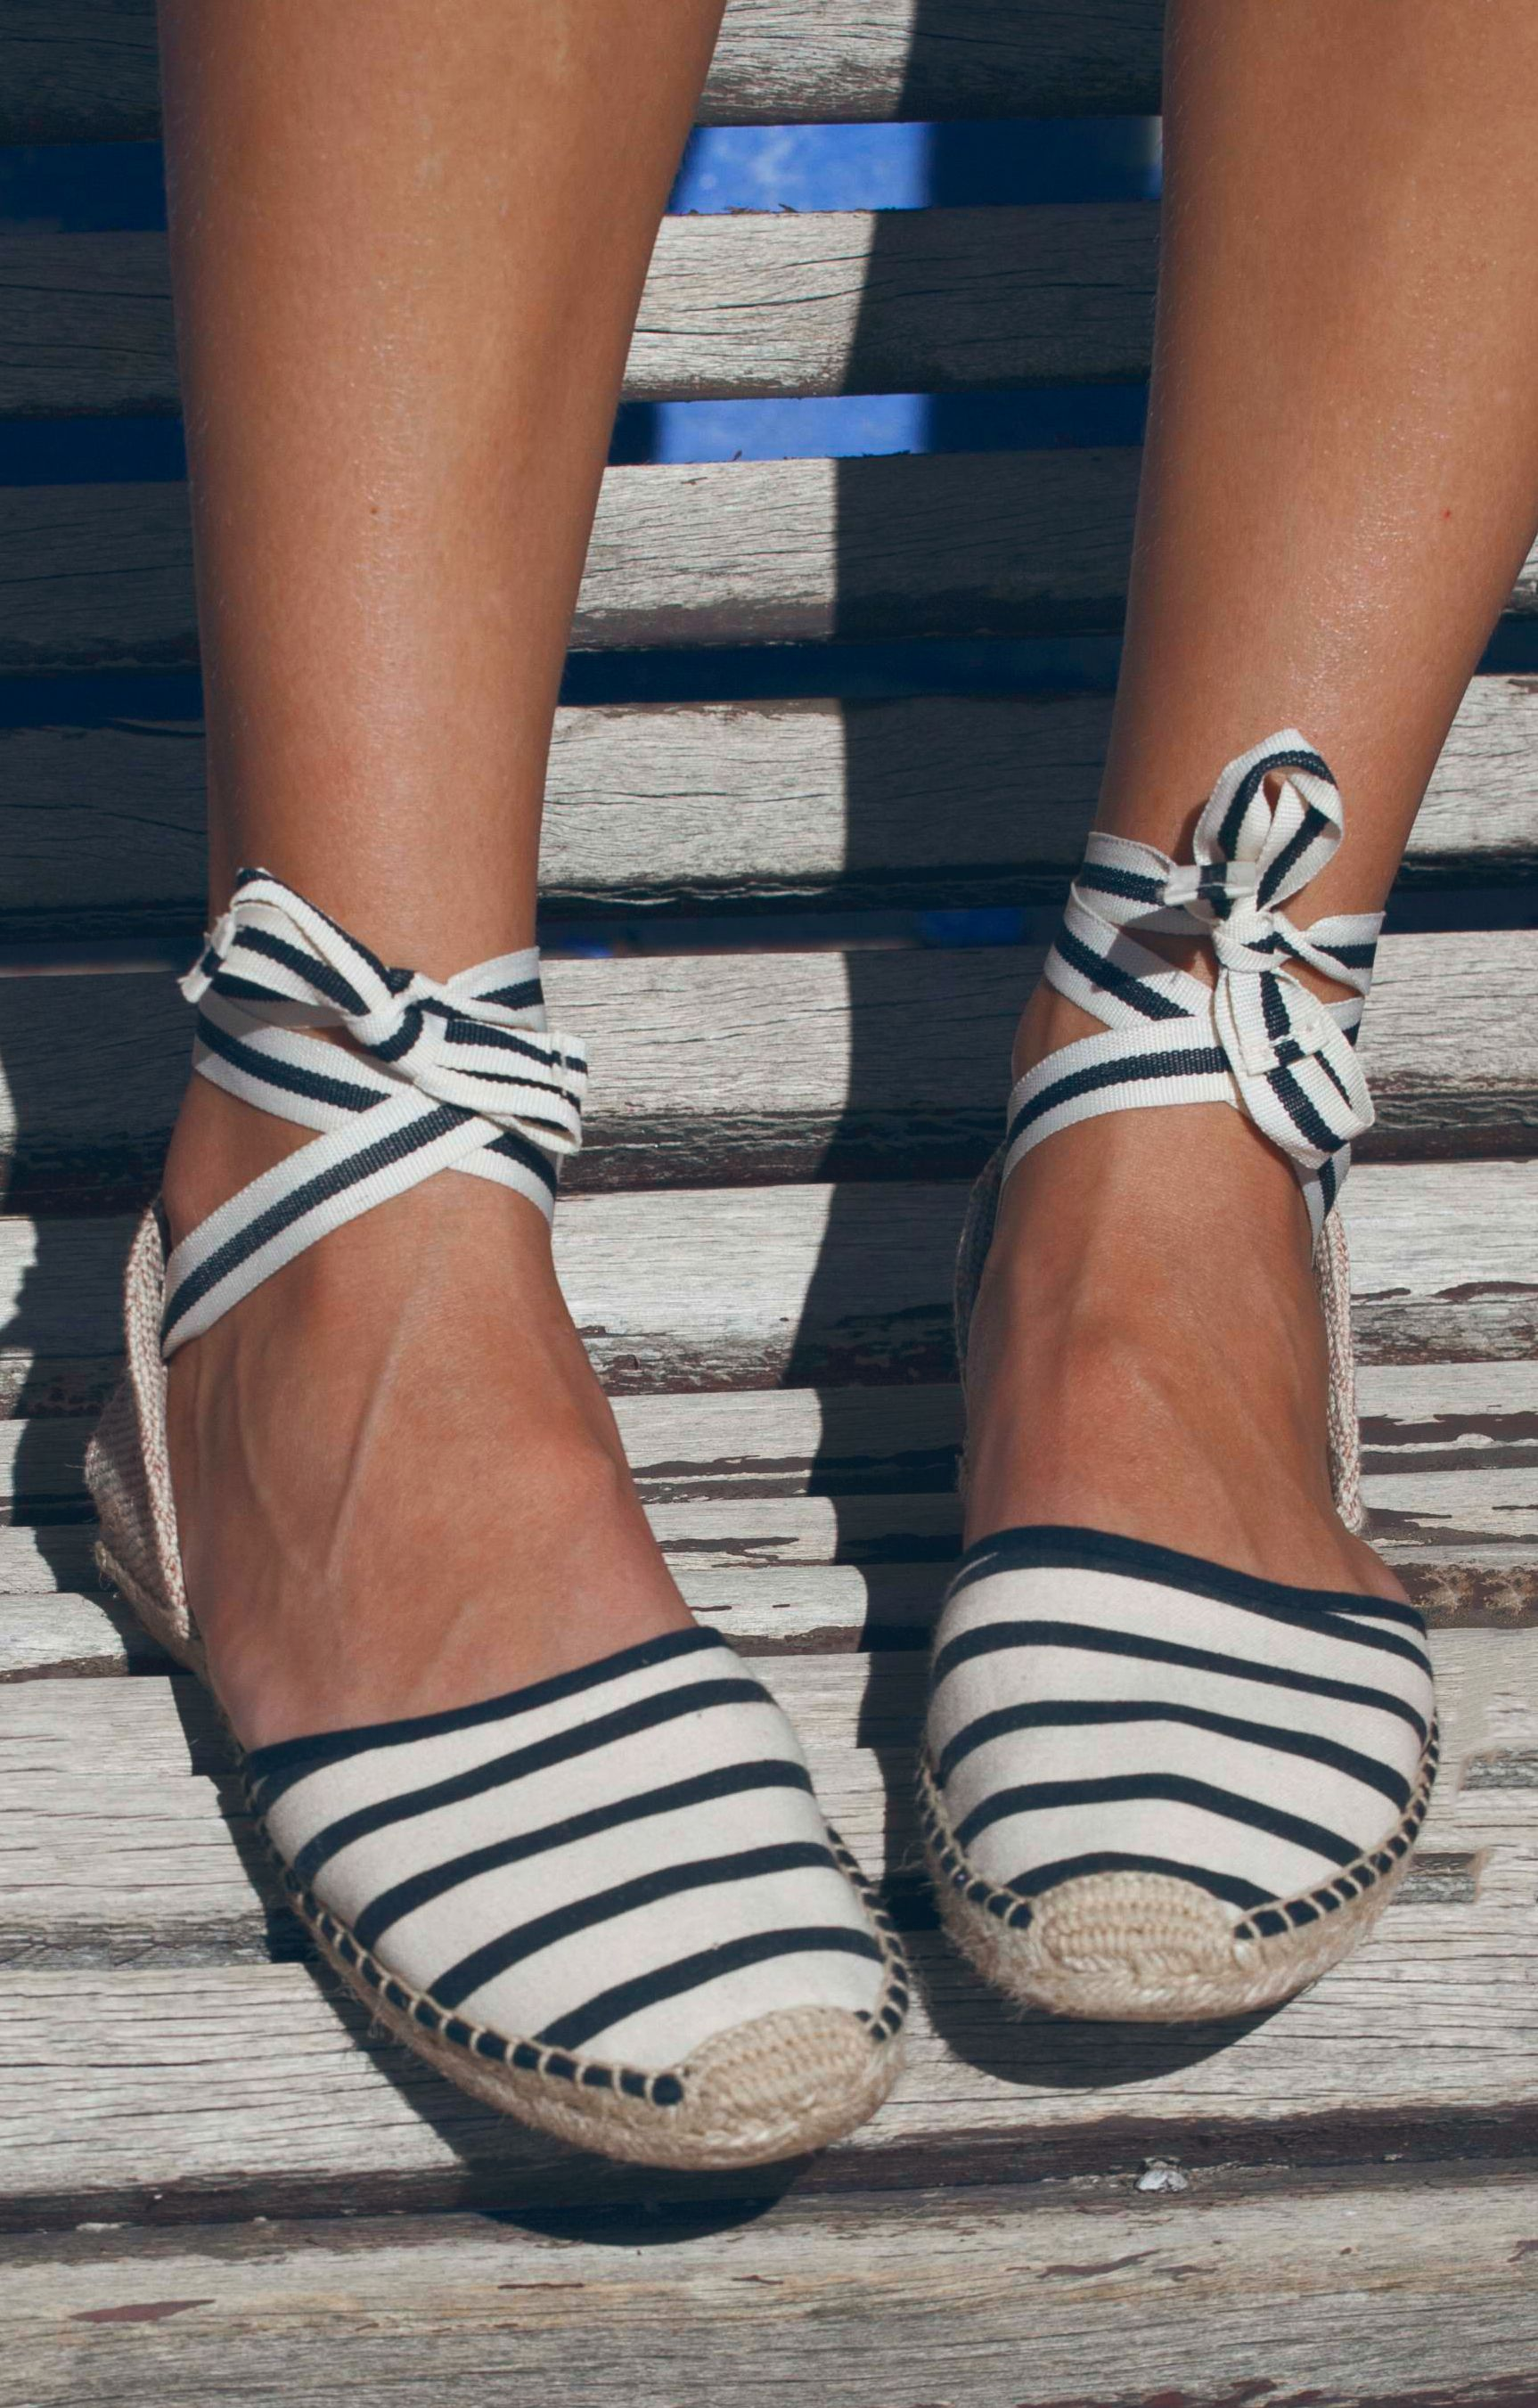 c36a5d28e Summer flats but could be a sandal too. I love how these lace up and ...